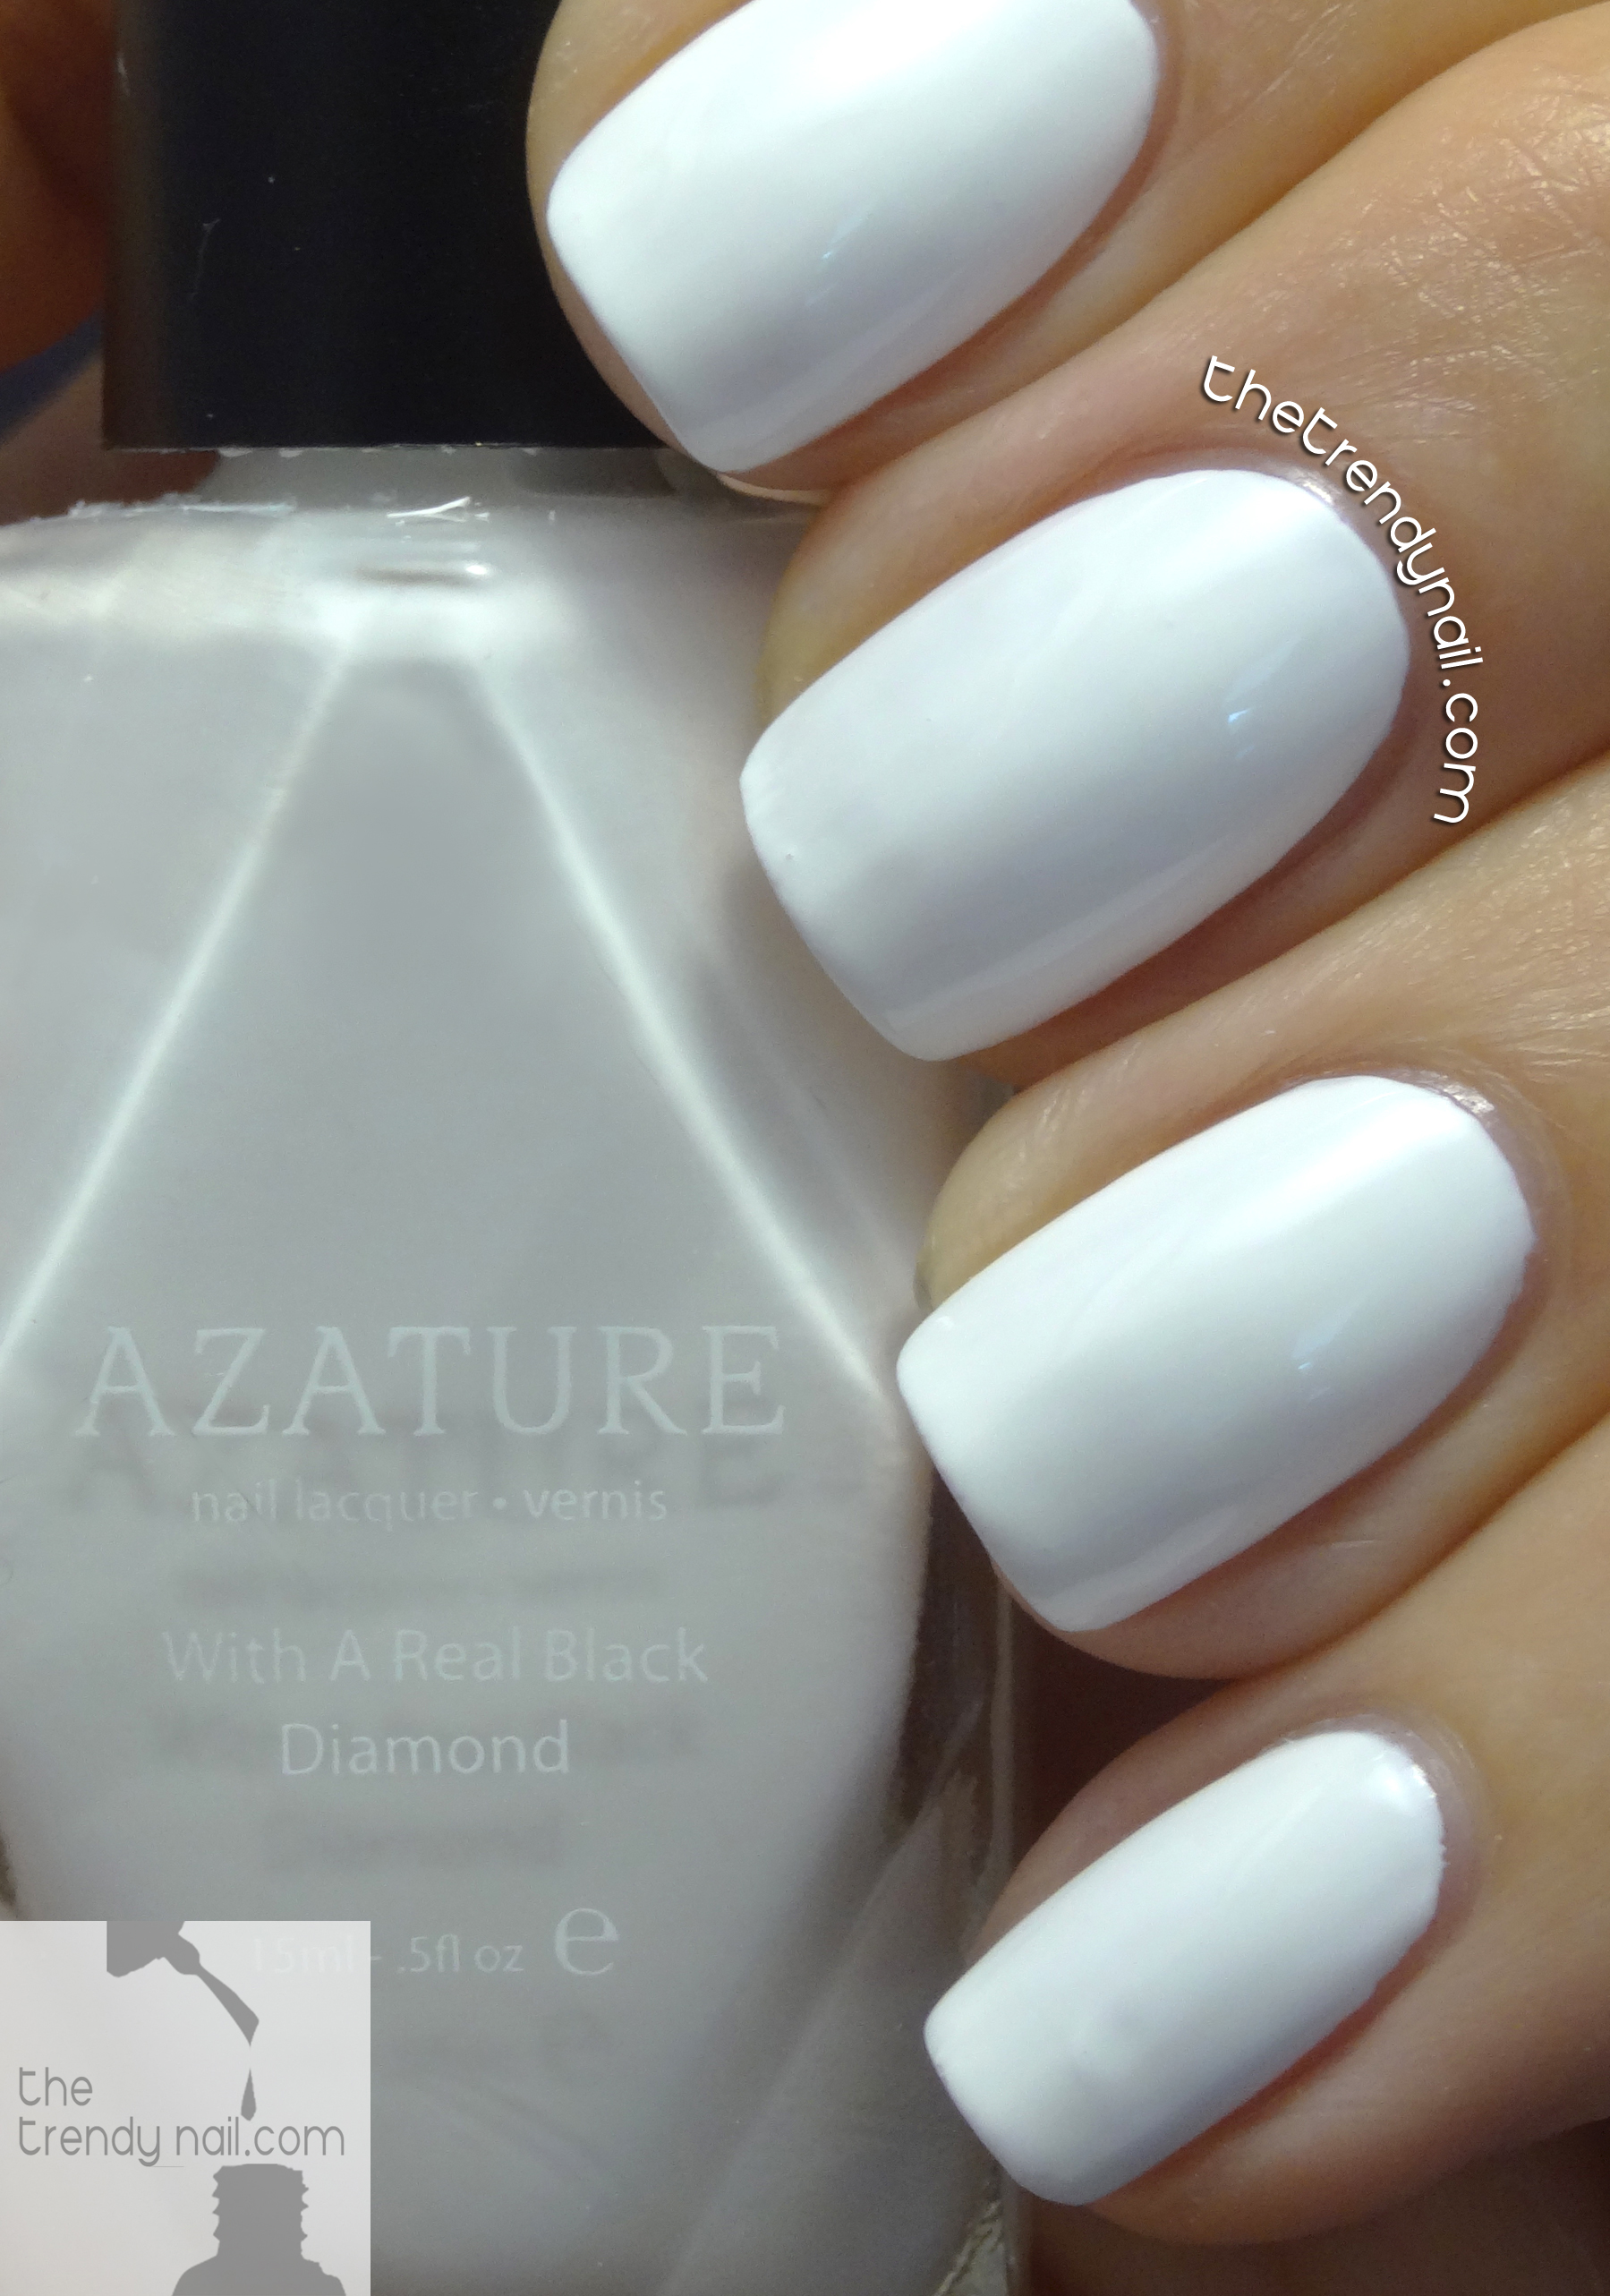 Trendy Nail Colors: NAILS REVEALED: AZATURE Faint White Swatches & Reviews